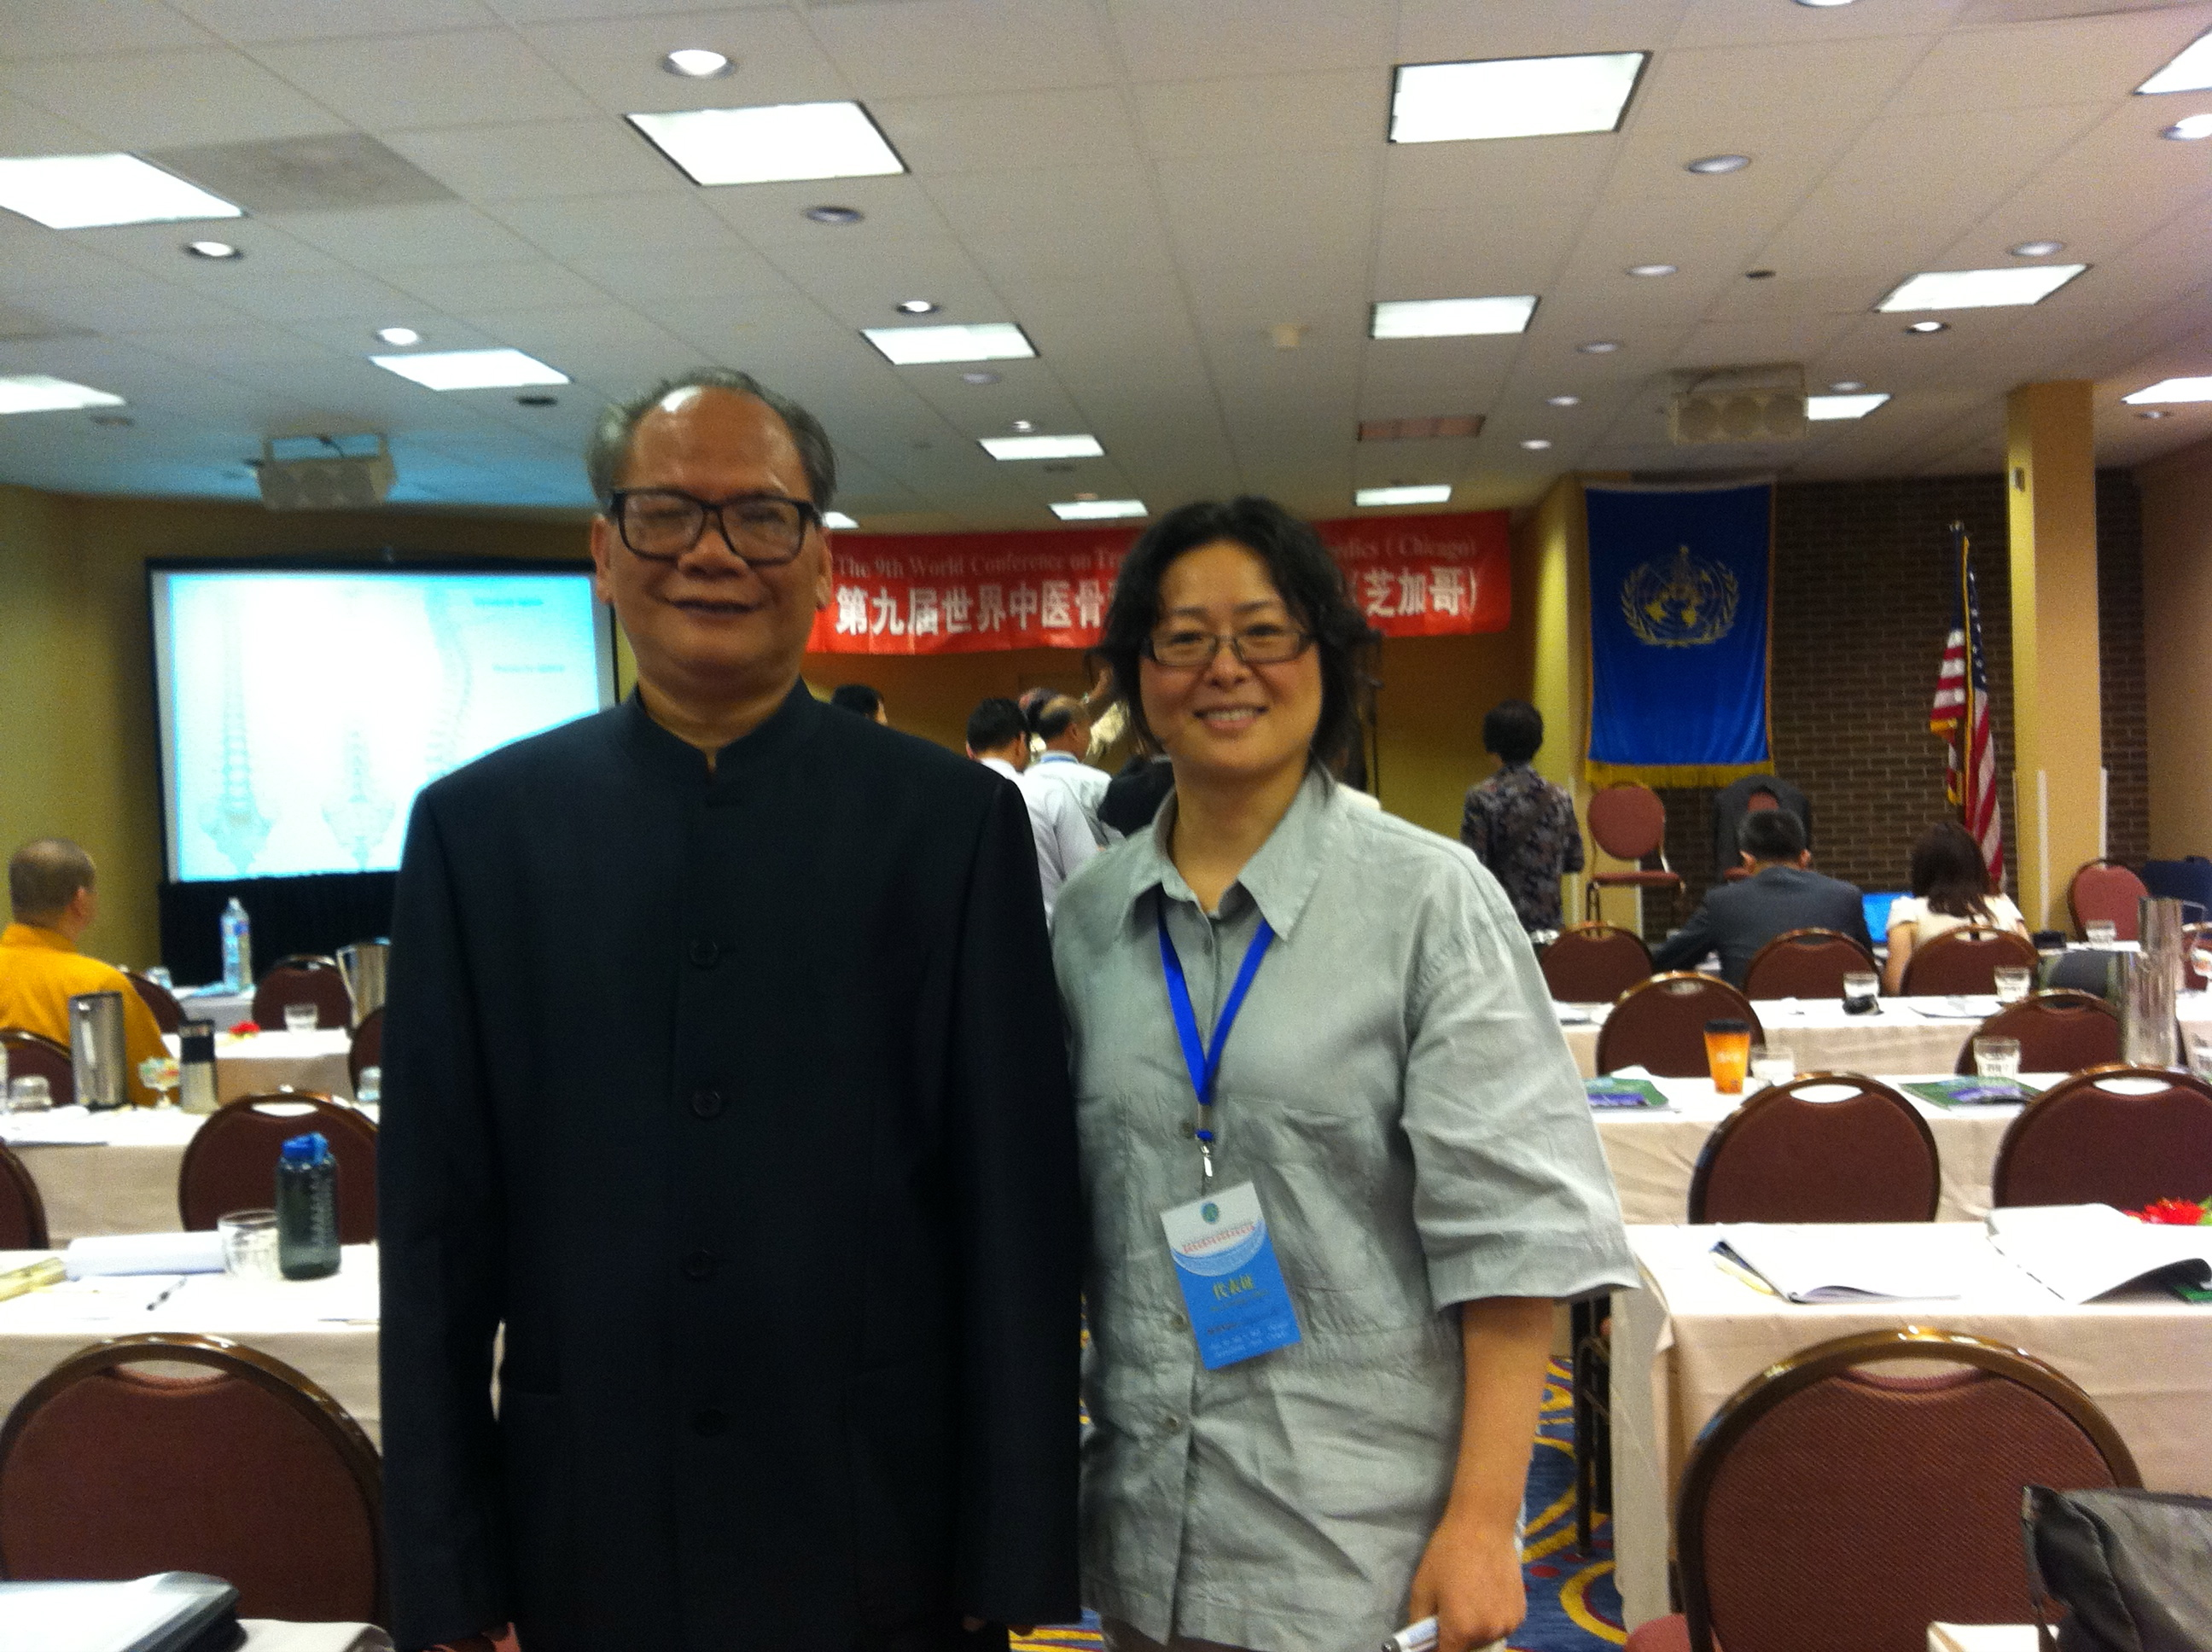 With Professor Wei, YiZhong from China at the 9th World Conference on Traditional Chinese Orthopedics in Chicago